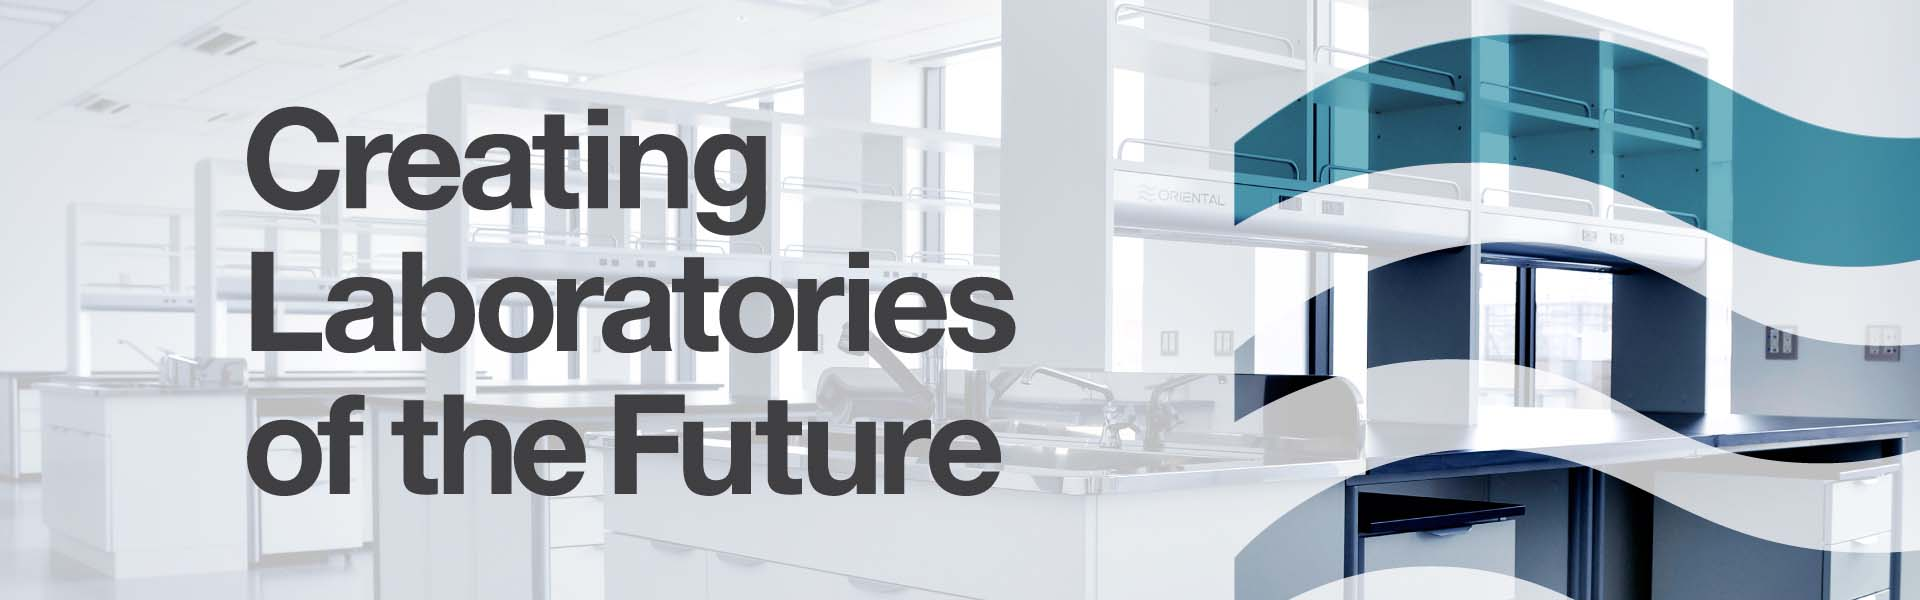 Creating Laboratories of the Future